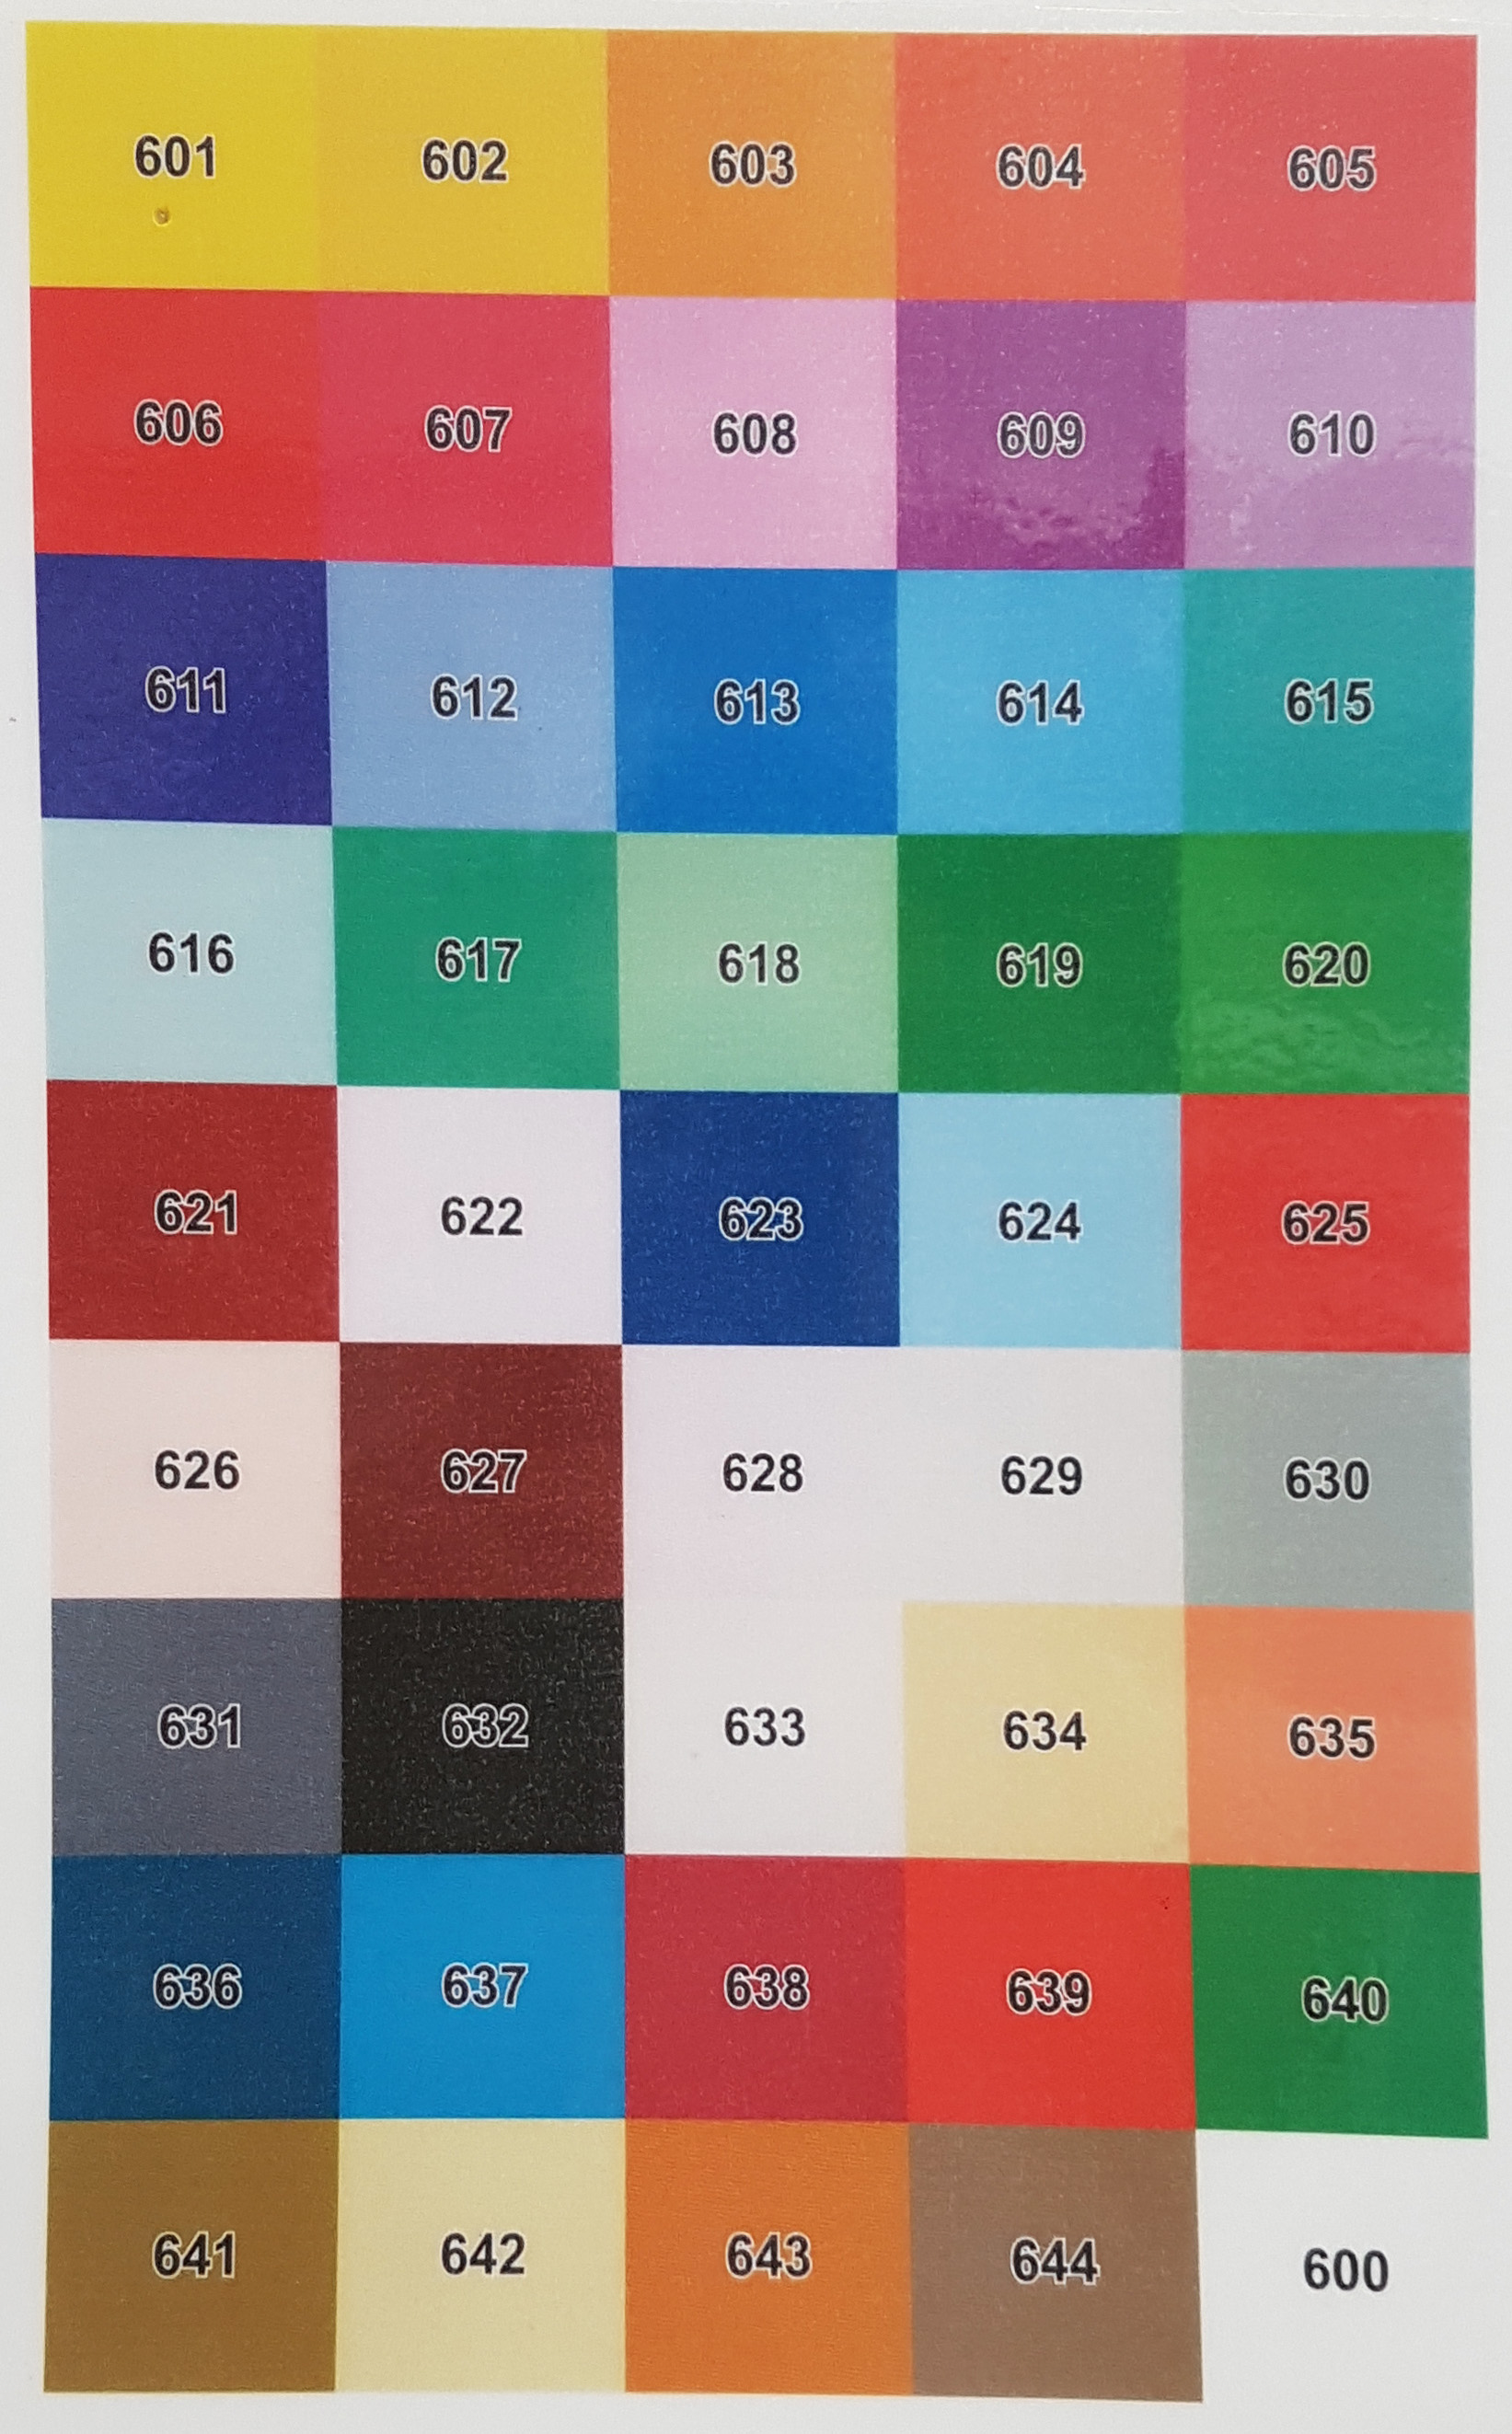 dockmat colour reference